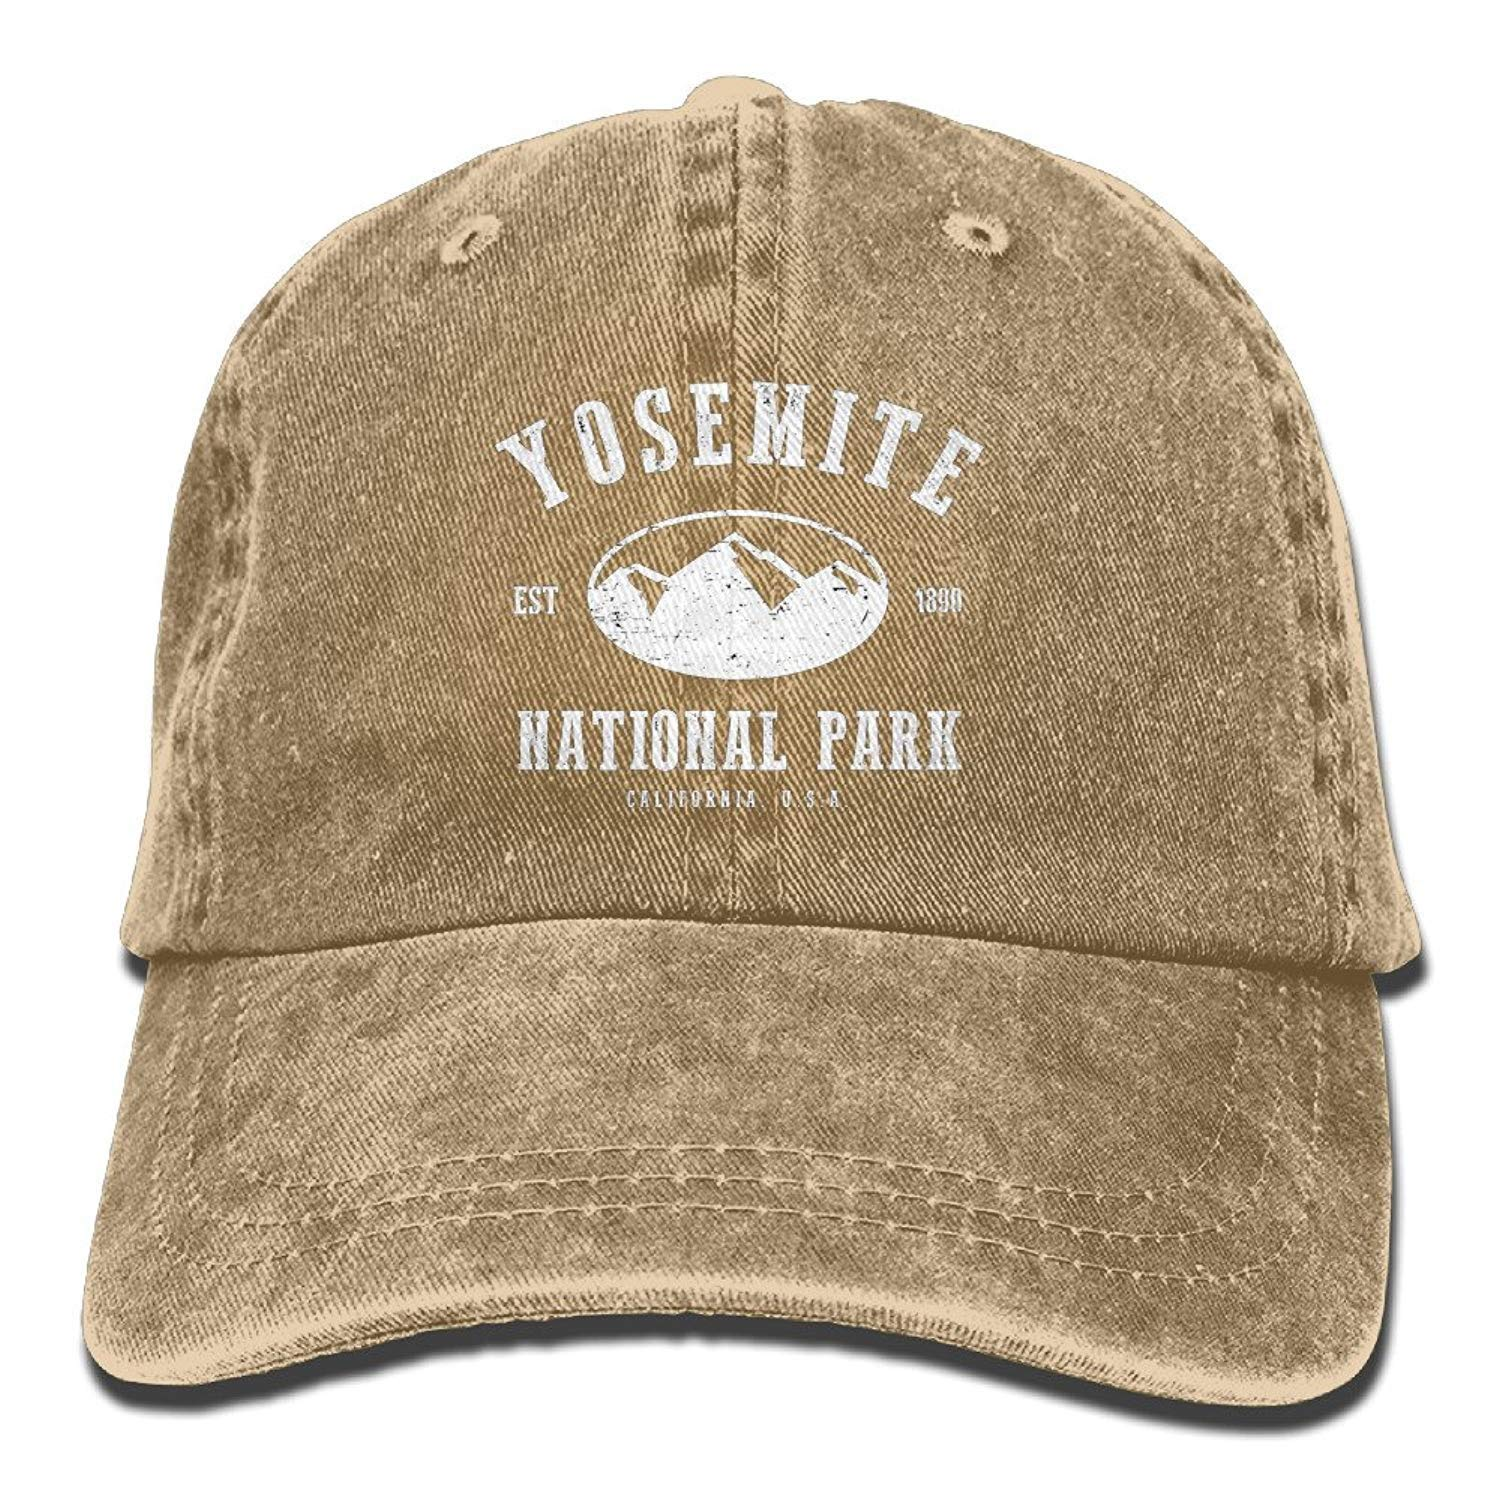 Yosemite National Park Retro Washed Dyed Cotton Adjustable Plain Cap Low  Profile HENBEERS 980c8dd1301d